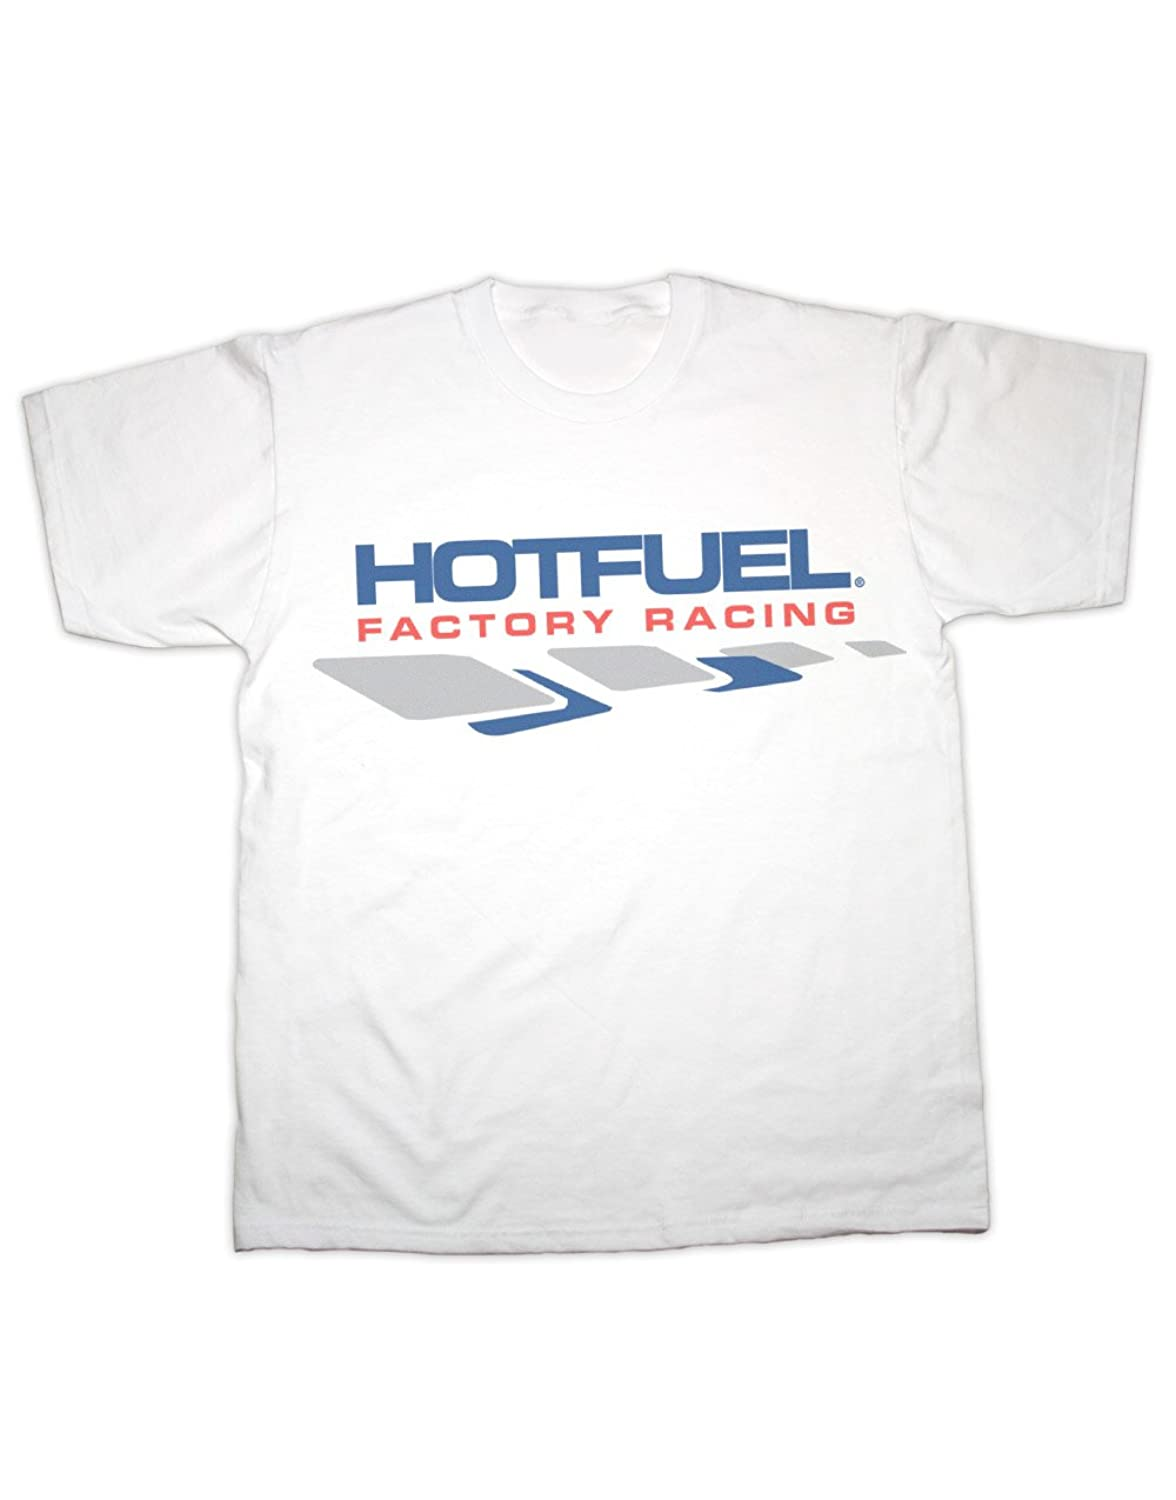 Hotfuel Factory Racing T-Shirt. All Sizes (Small - 5XL)